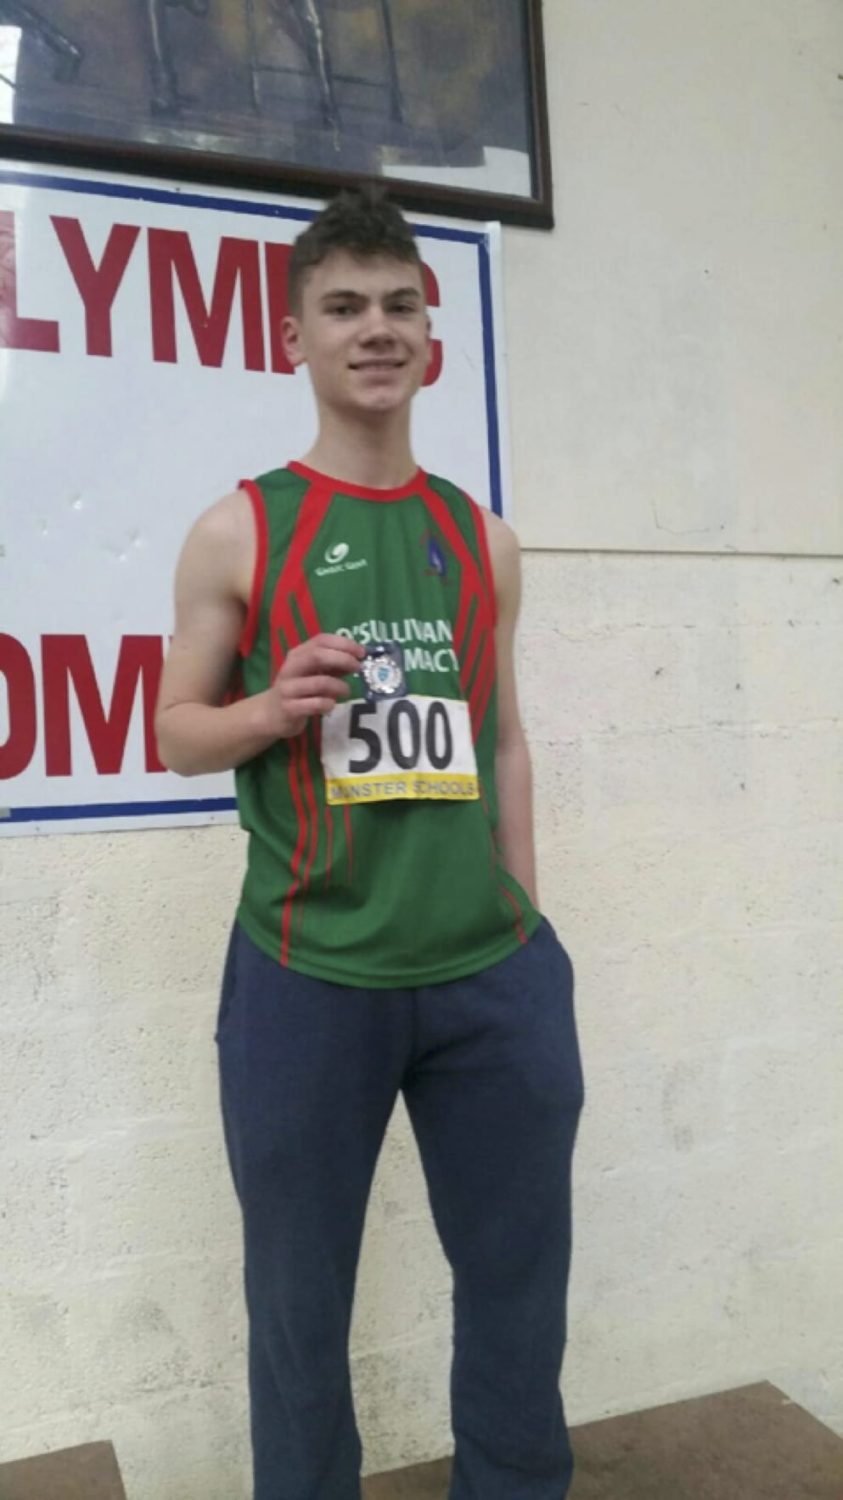 March 2017: Desmond College 2nd year student, Nathan Wright, won silver in the North Munster Indoor Championship Long Jump, setting a personal best of 5.52 meters